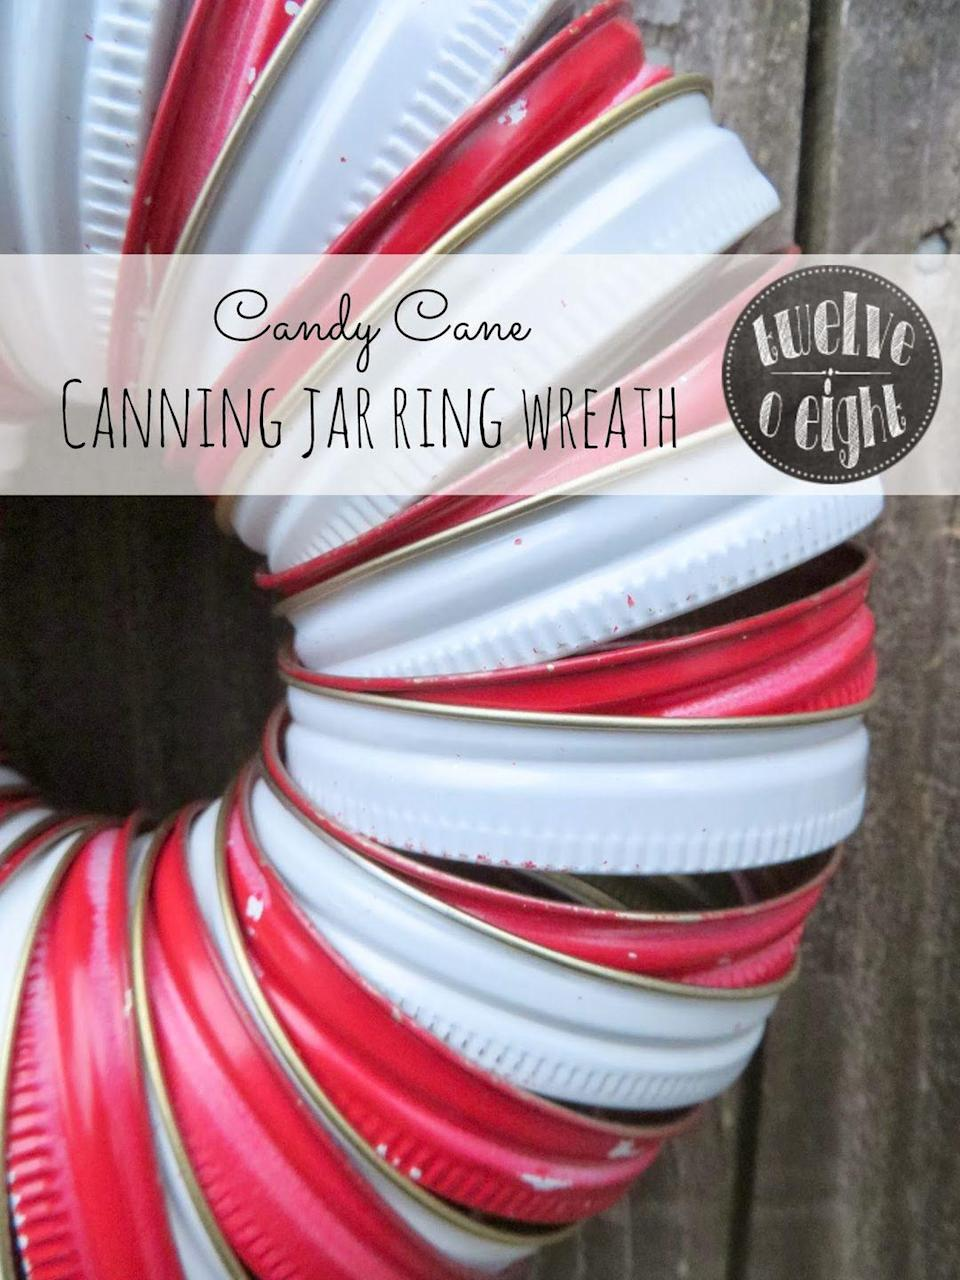 "<p>Mason jar lids get a second life in this creative, peppermint-inspired wreath.<br></p><p><span class=""redactor-invisible-space"">SHOP JAR LIDS </span><br></p><p><span class=""redactor-invisible-space""><em><a href=""http://www.twelveoeightblog.com/2013/11/candy-cane-canning-jar-ring-wreath.html"" rel=""nofollow noopener"" target=""_blank"" data-ylk=""slk:Get the tutorial at Twelve O Eight »"" class=""link rapid-noclick-resp"">Get the tutorial at Twelve O Eight »</a></em><br></span></p>"